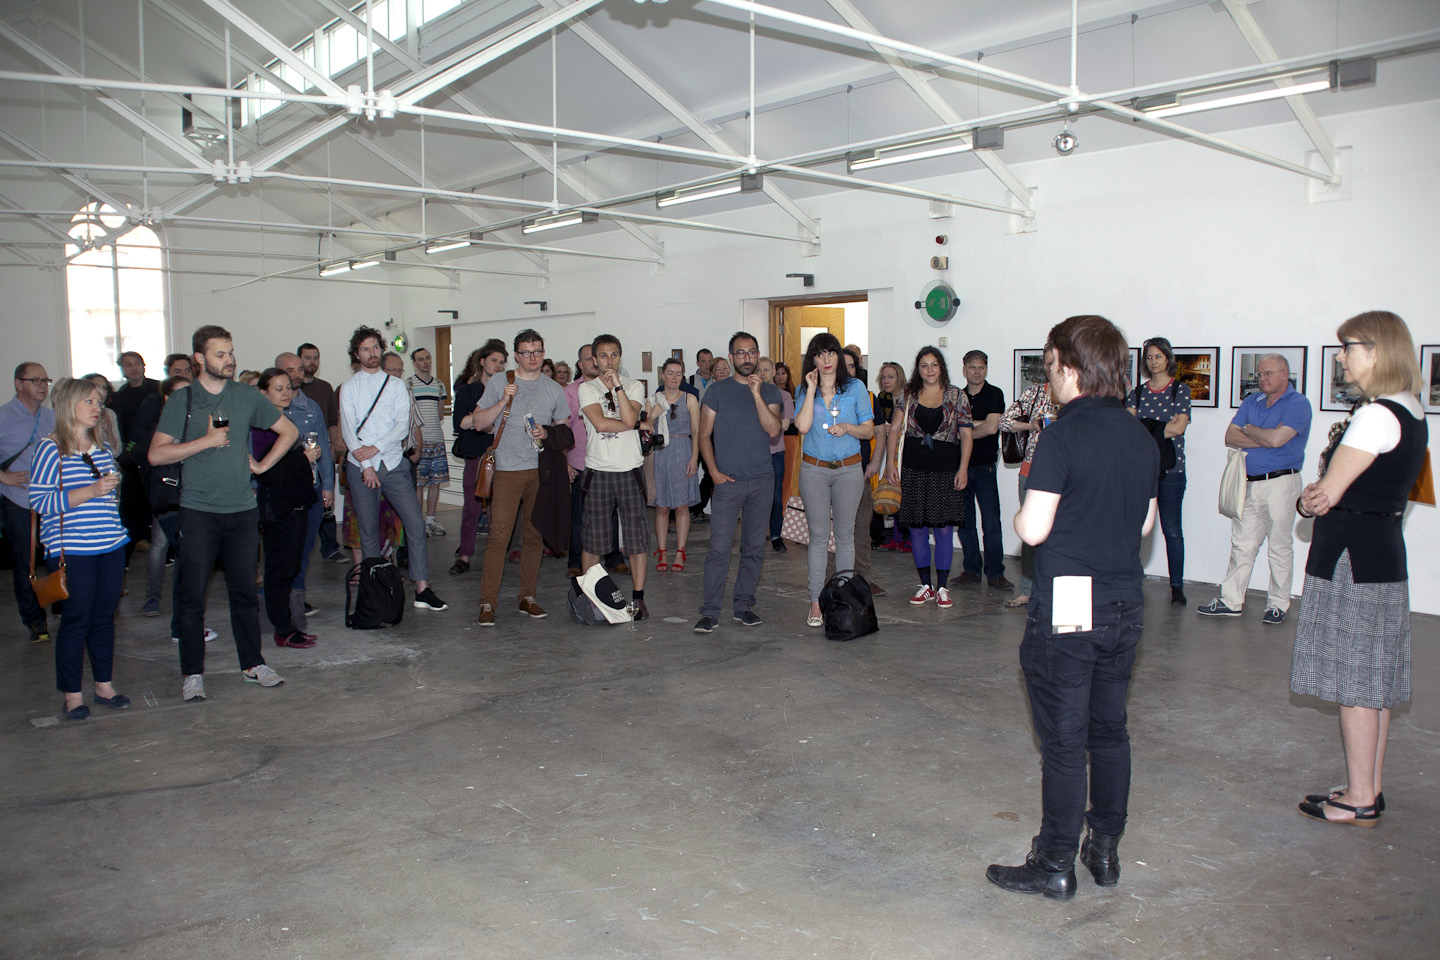 Ormeau Baths Gallery - Opening - June 8 2013 (17).jpg